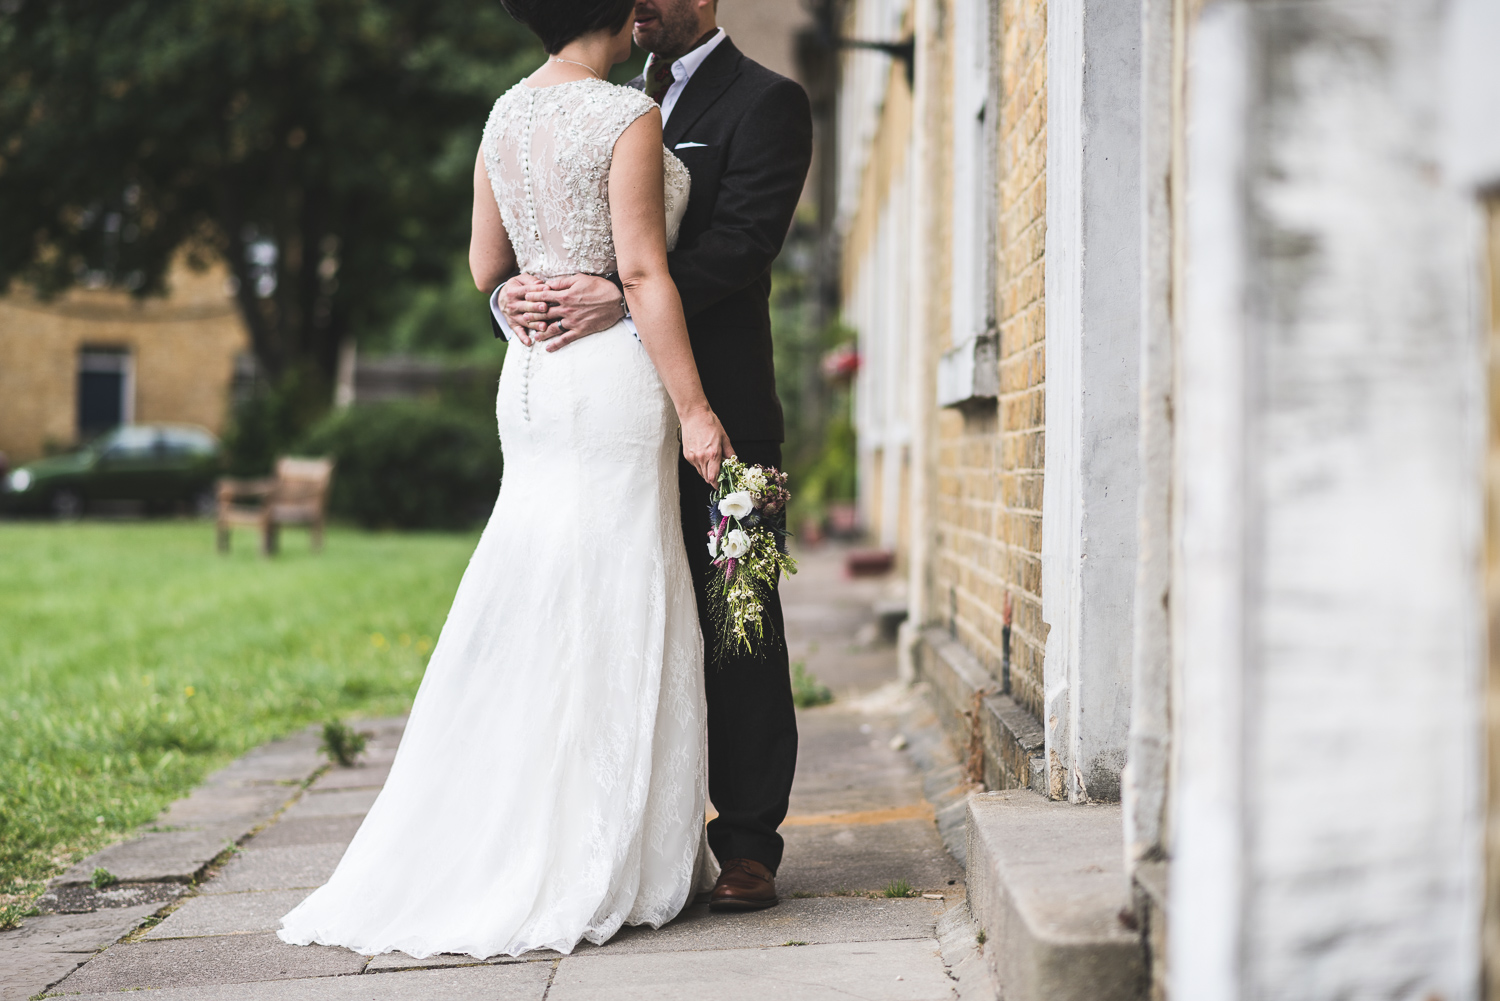 Catherine_John_The_Asylum_Chapel_Brunel_Museum_Wedding_London-41.jpg